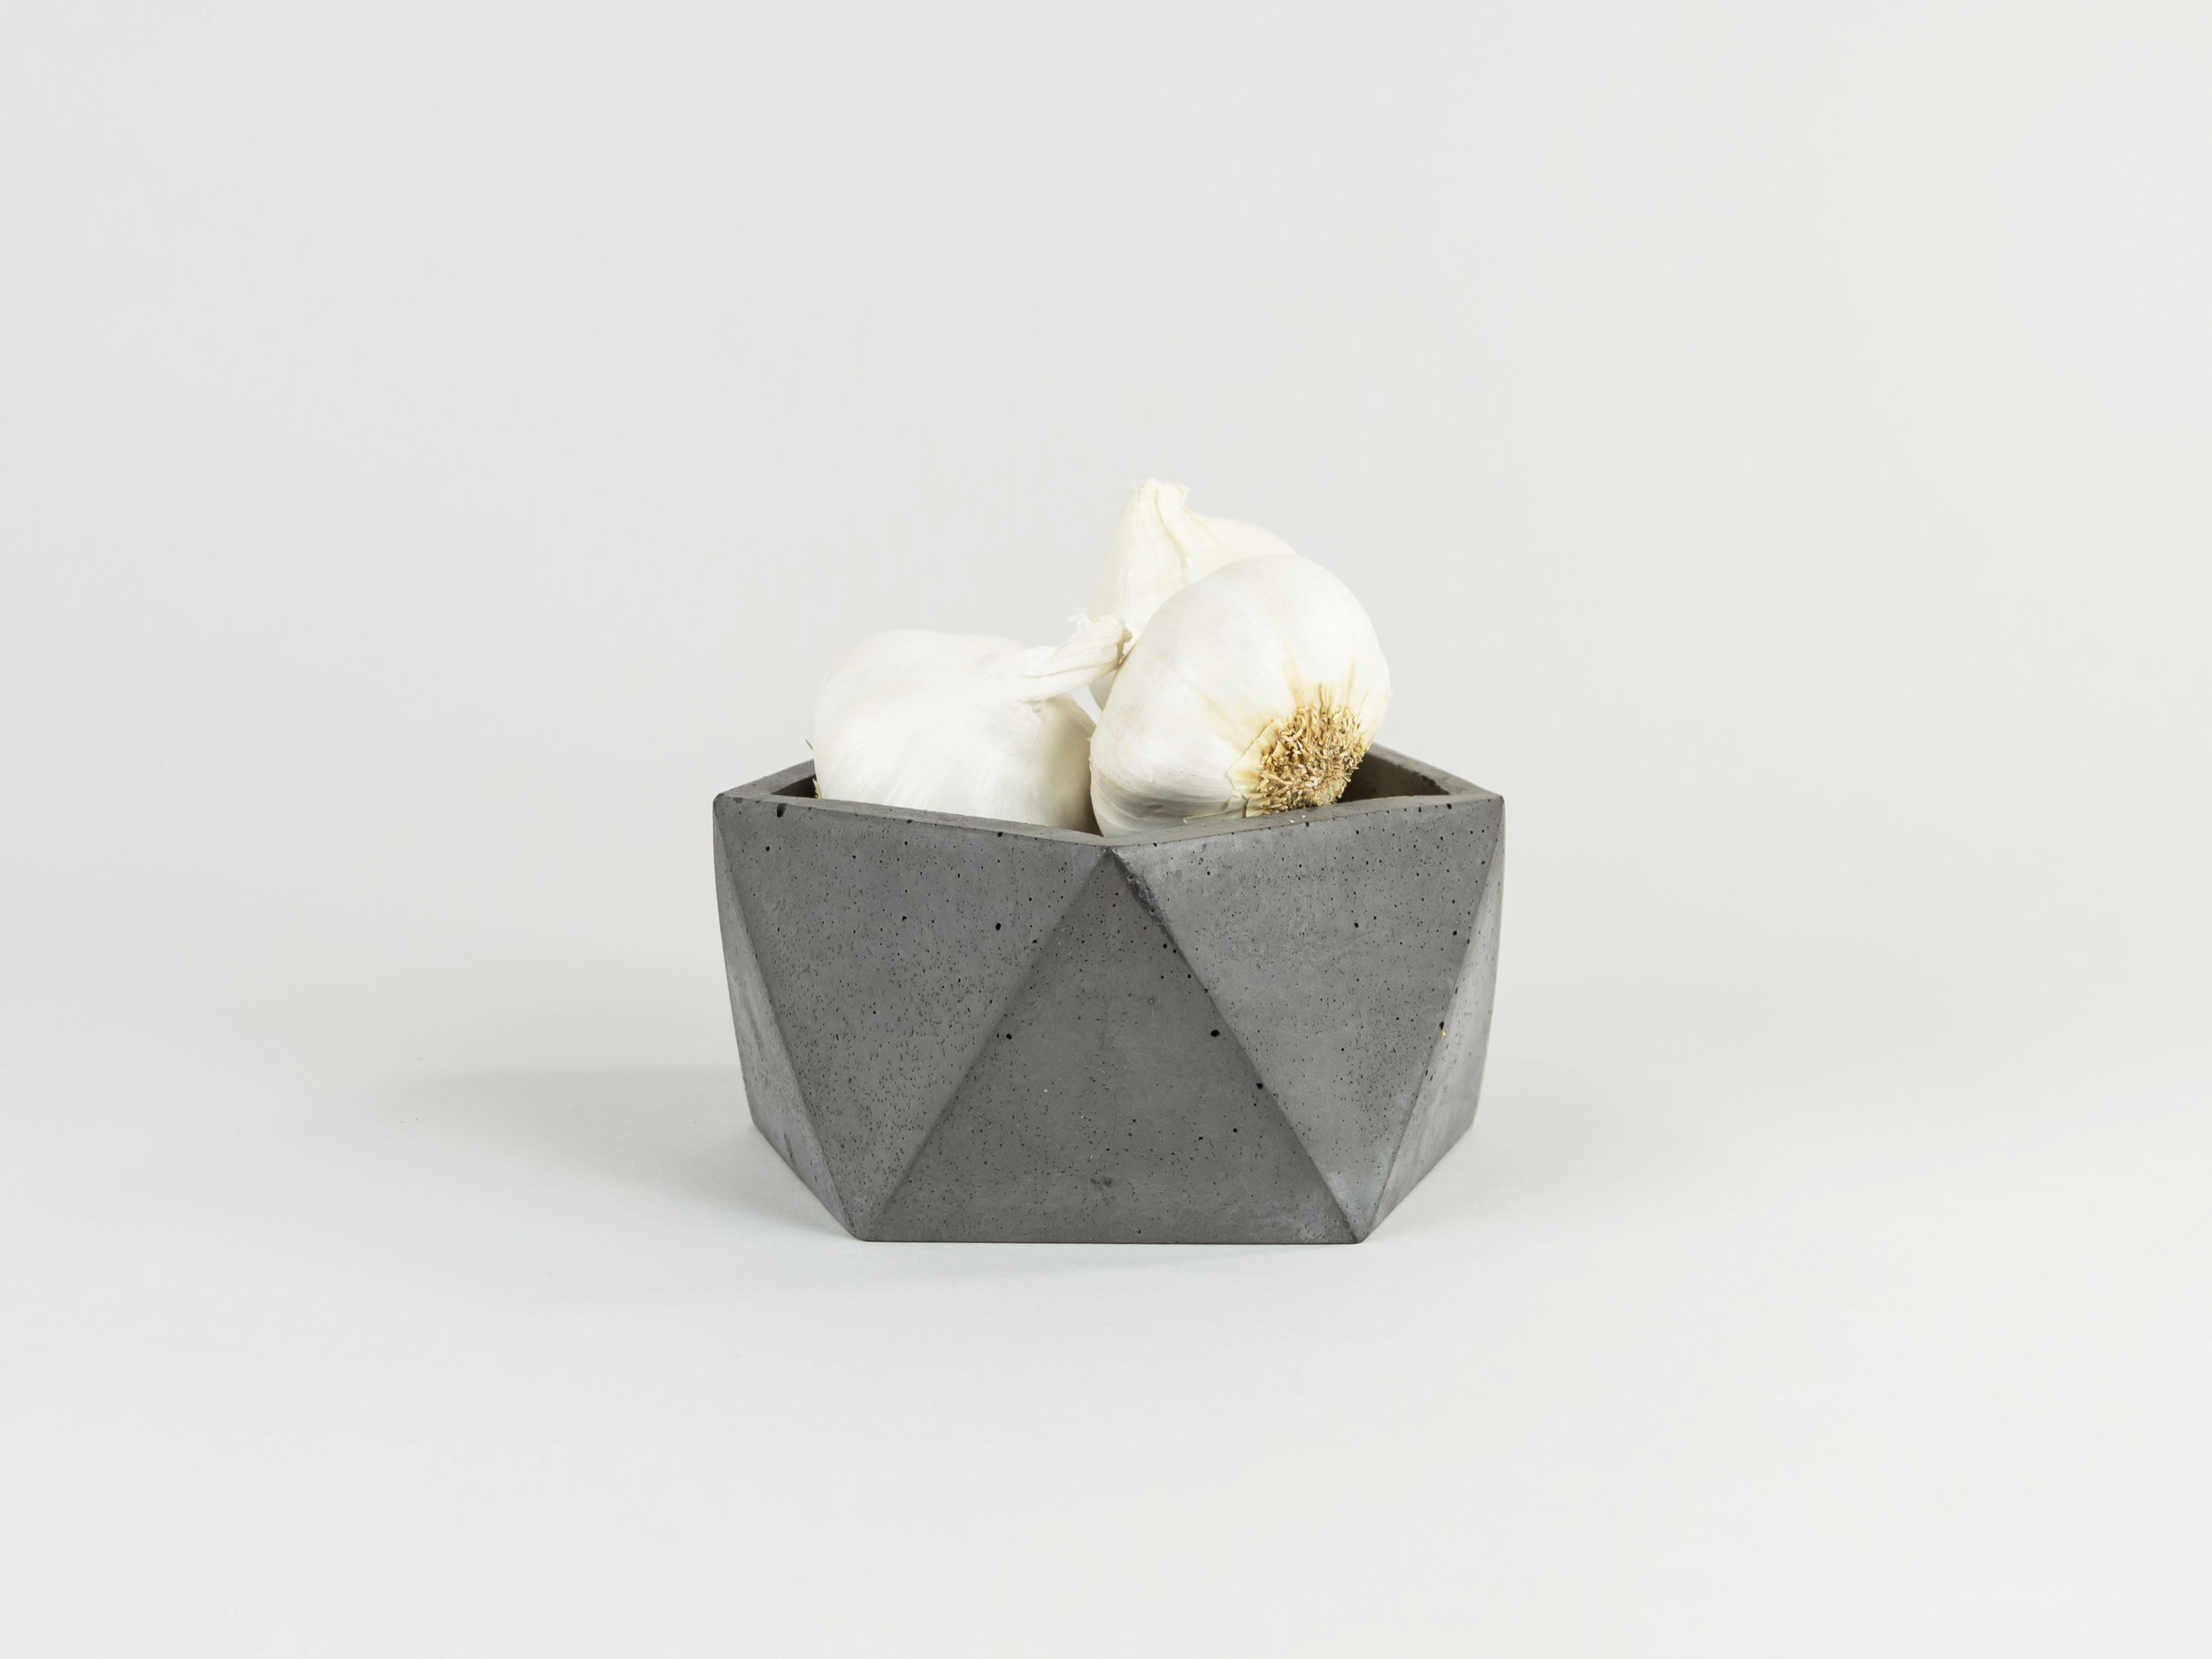 Copy of Modern Geometric shaped concrete dish with garlic by The savvy Heart